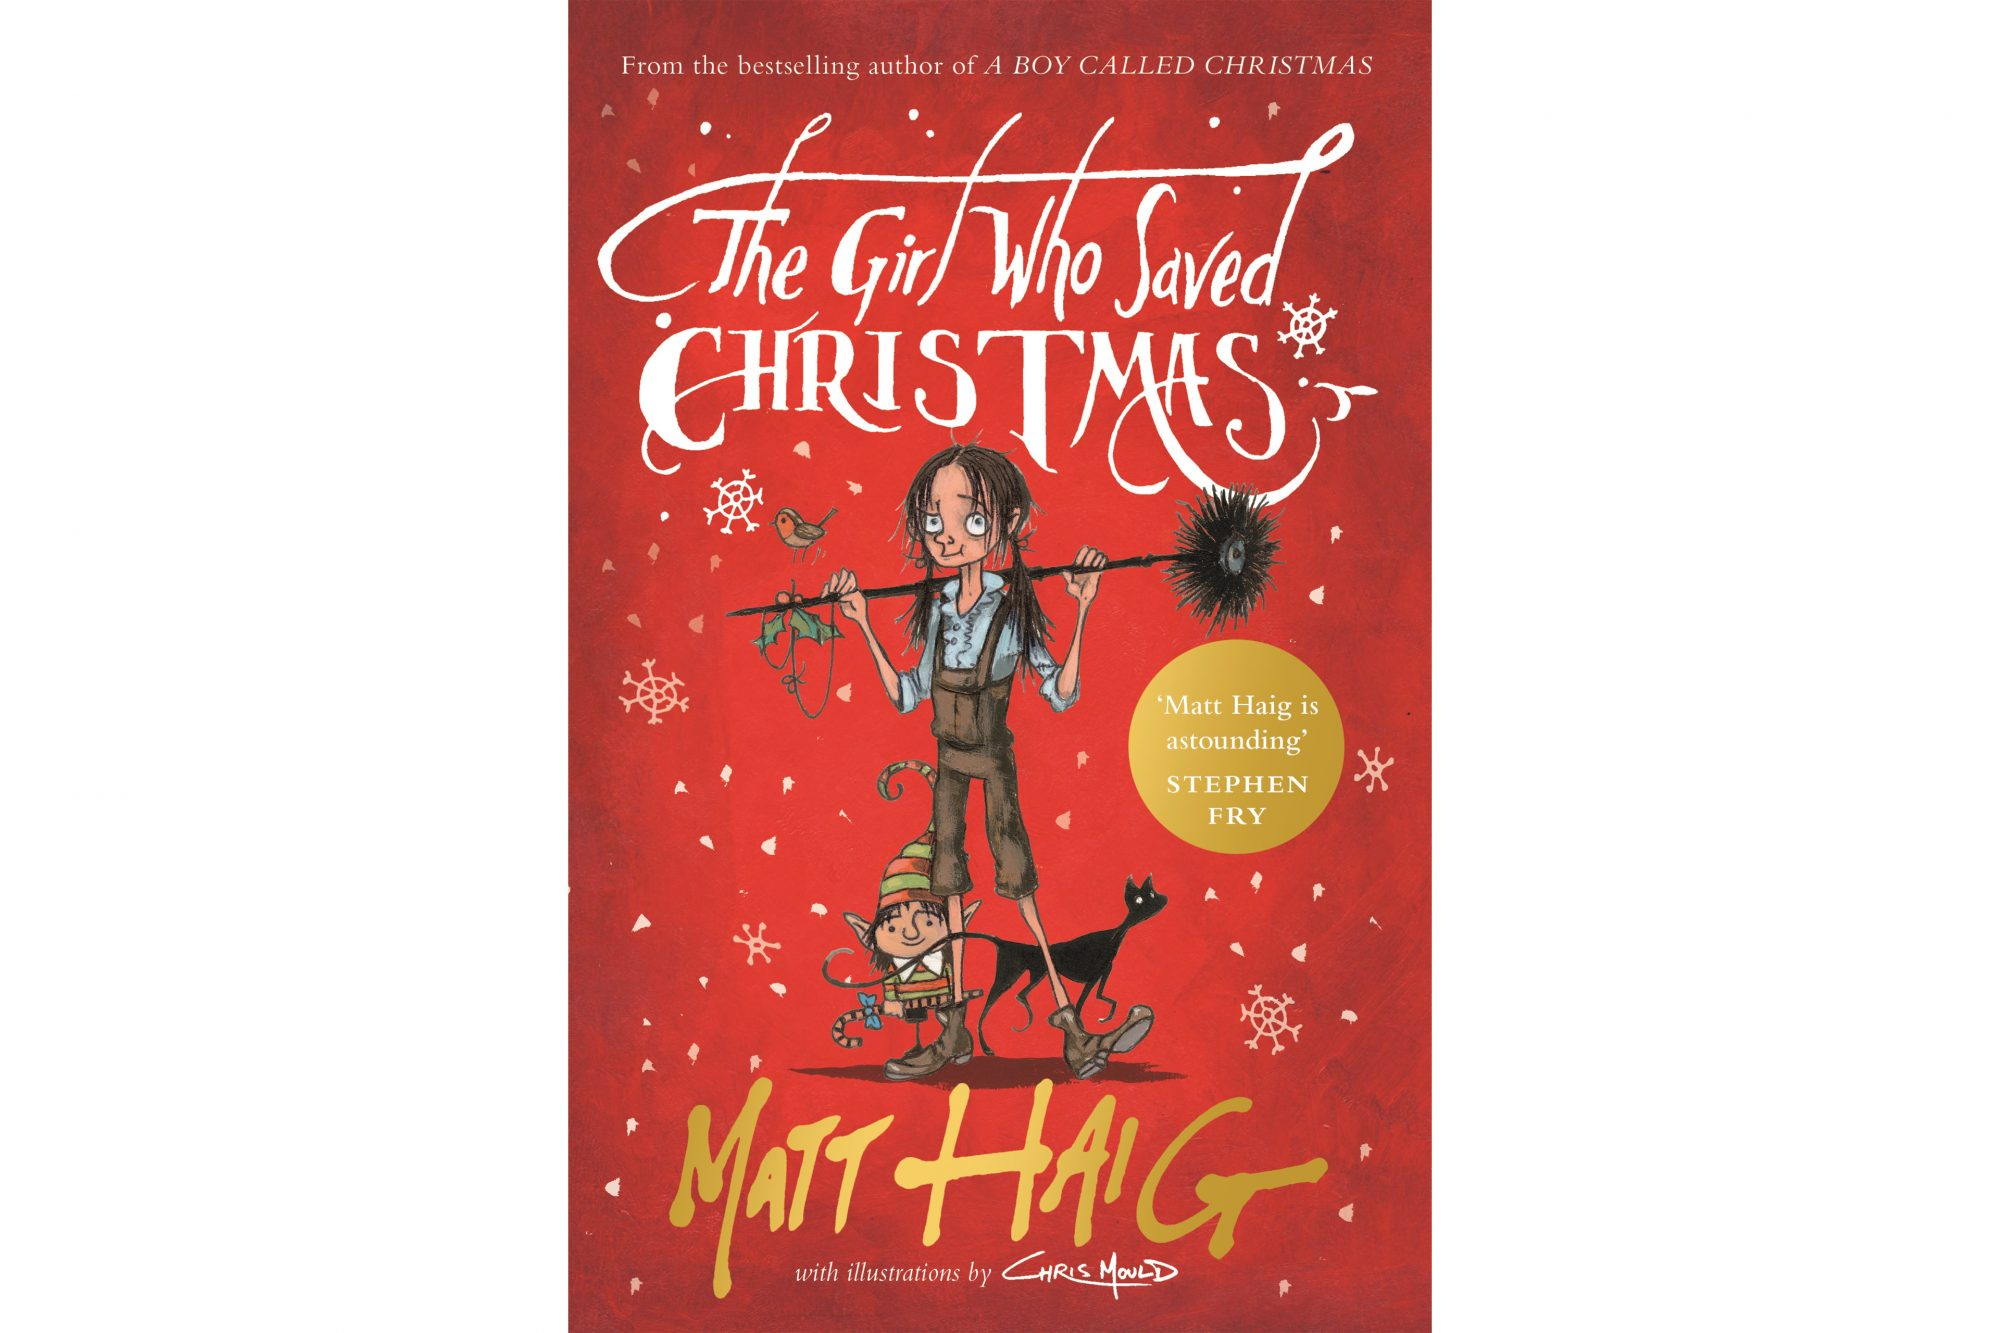 The Girl Who Saved Christmas, by Matt Haig